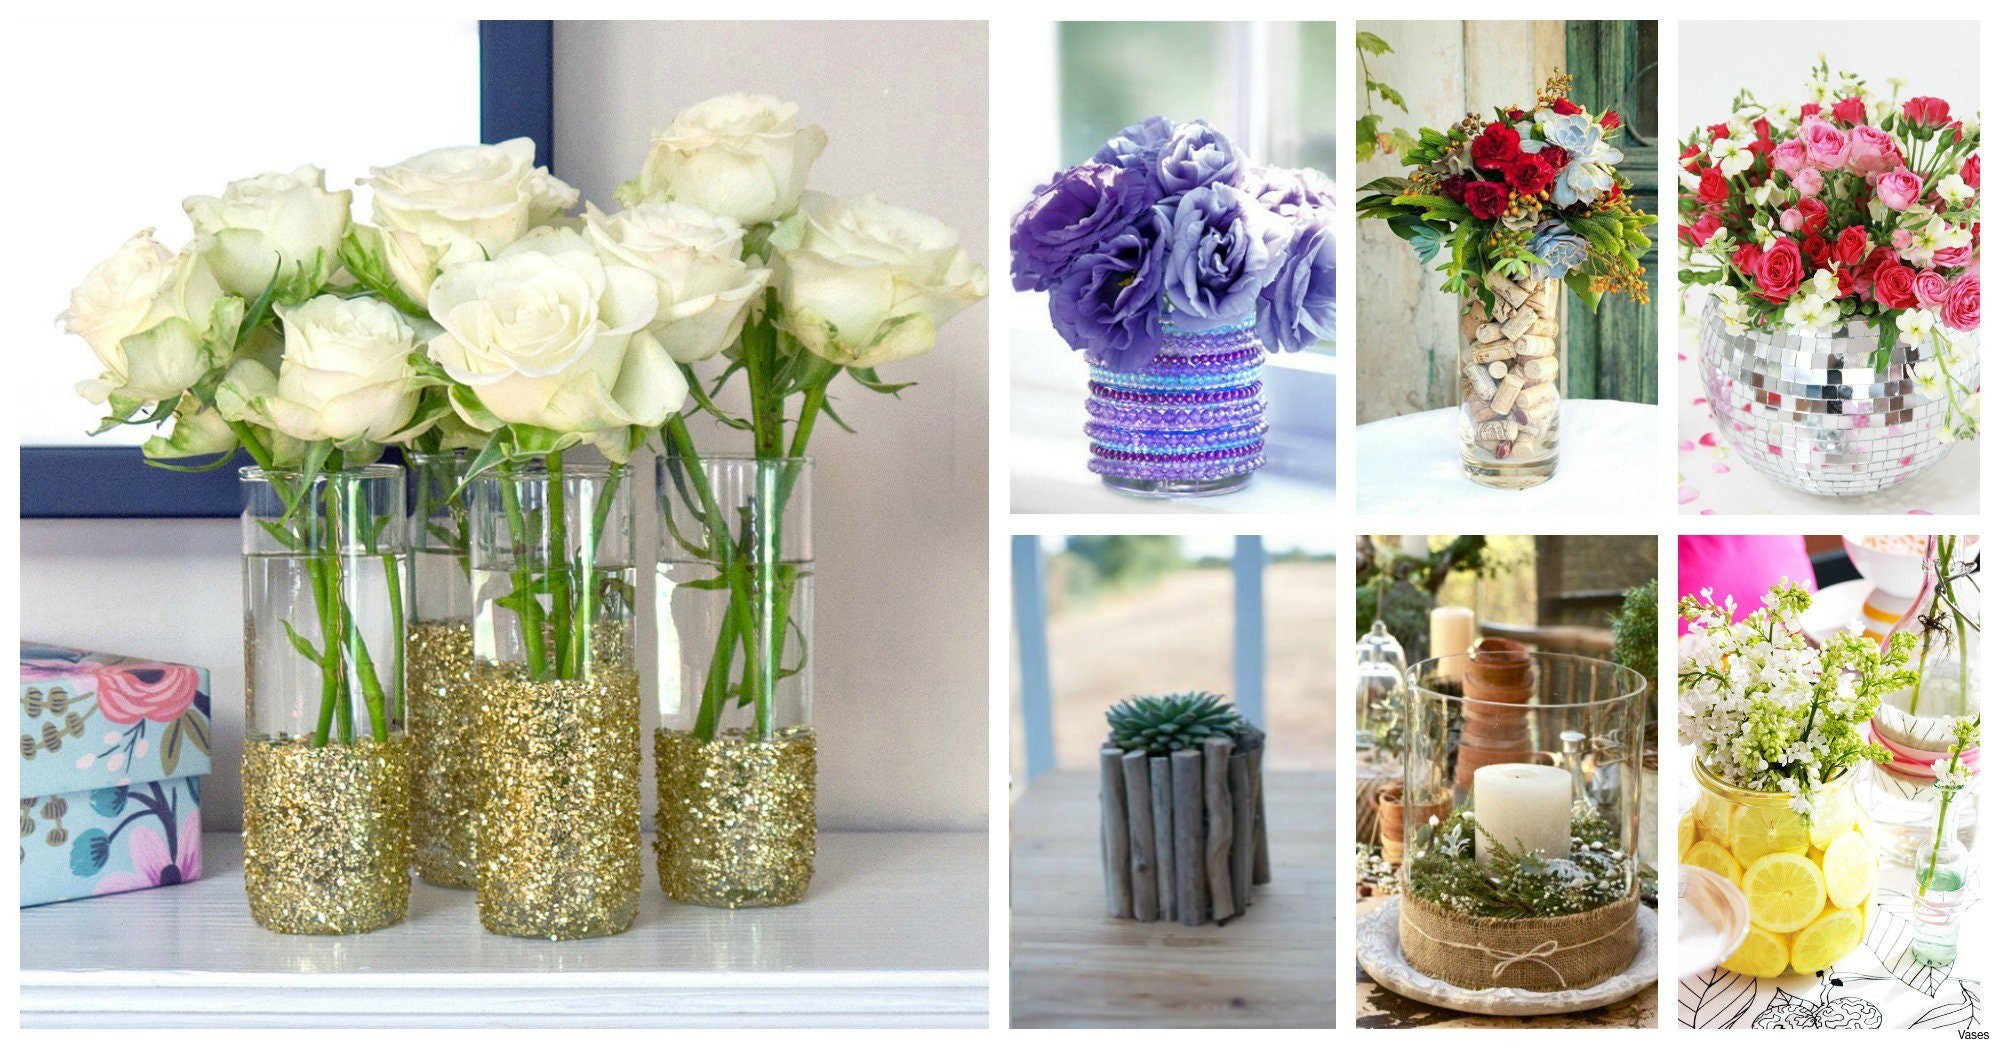 tall clear vases of decorating ideas for tall vases fresh vases how to decorate tall with decorating ideas for tall vases fresh vases how to decorate tall glass vase decorating ideas flower set i